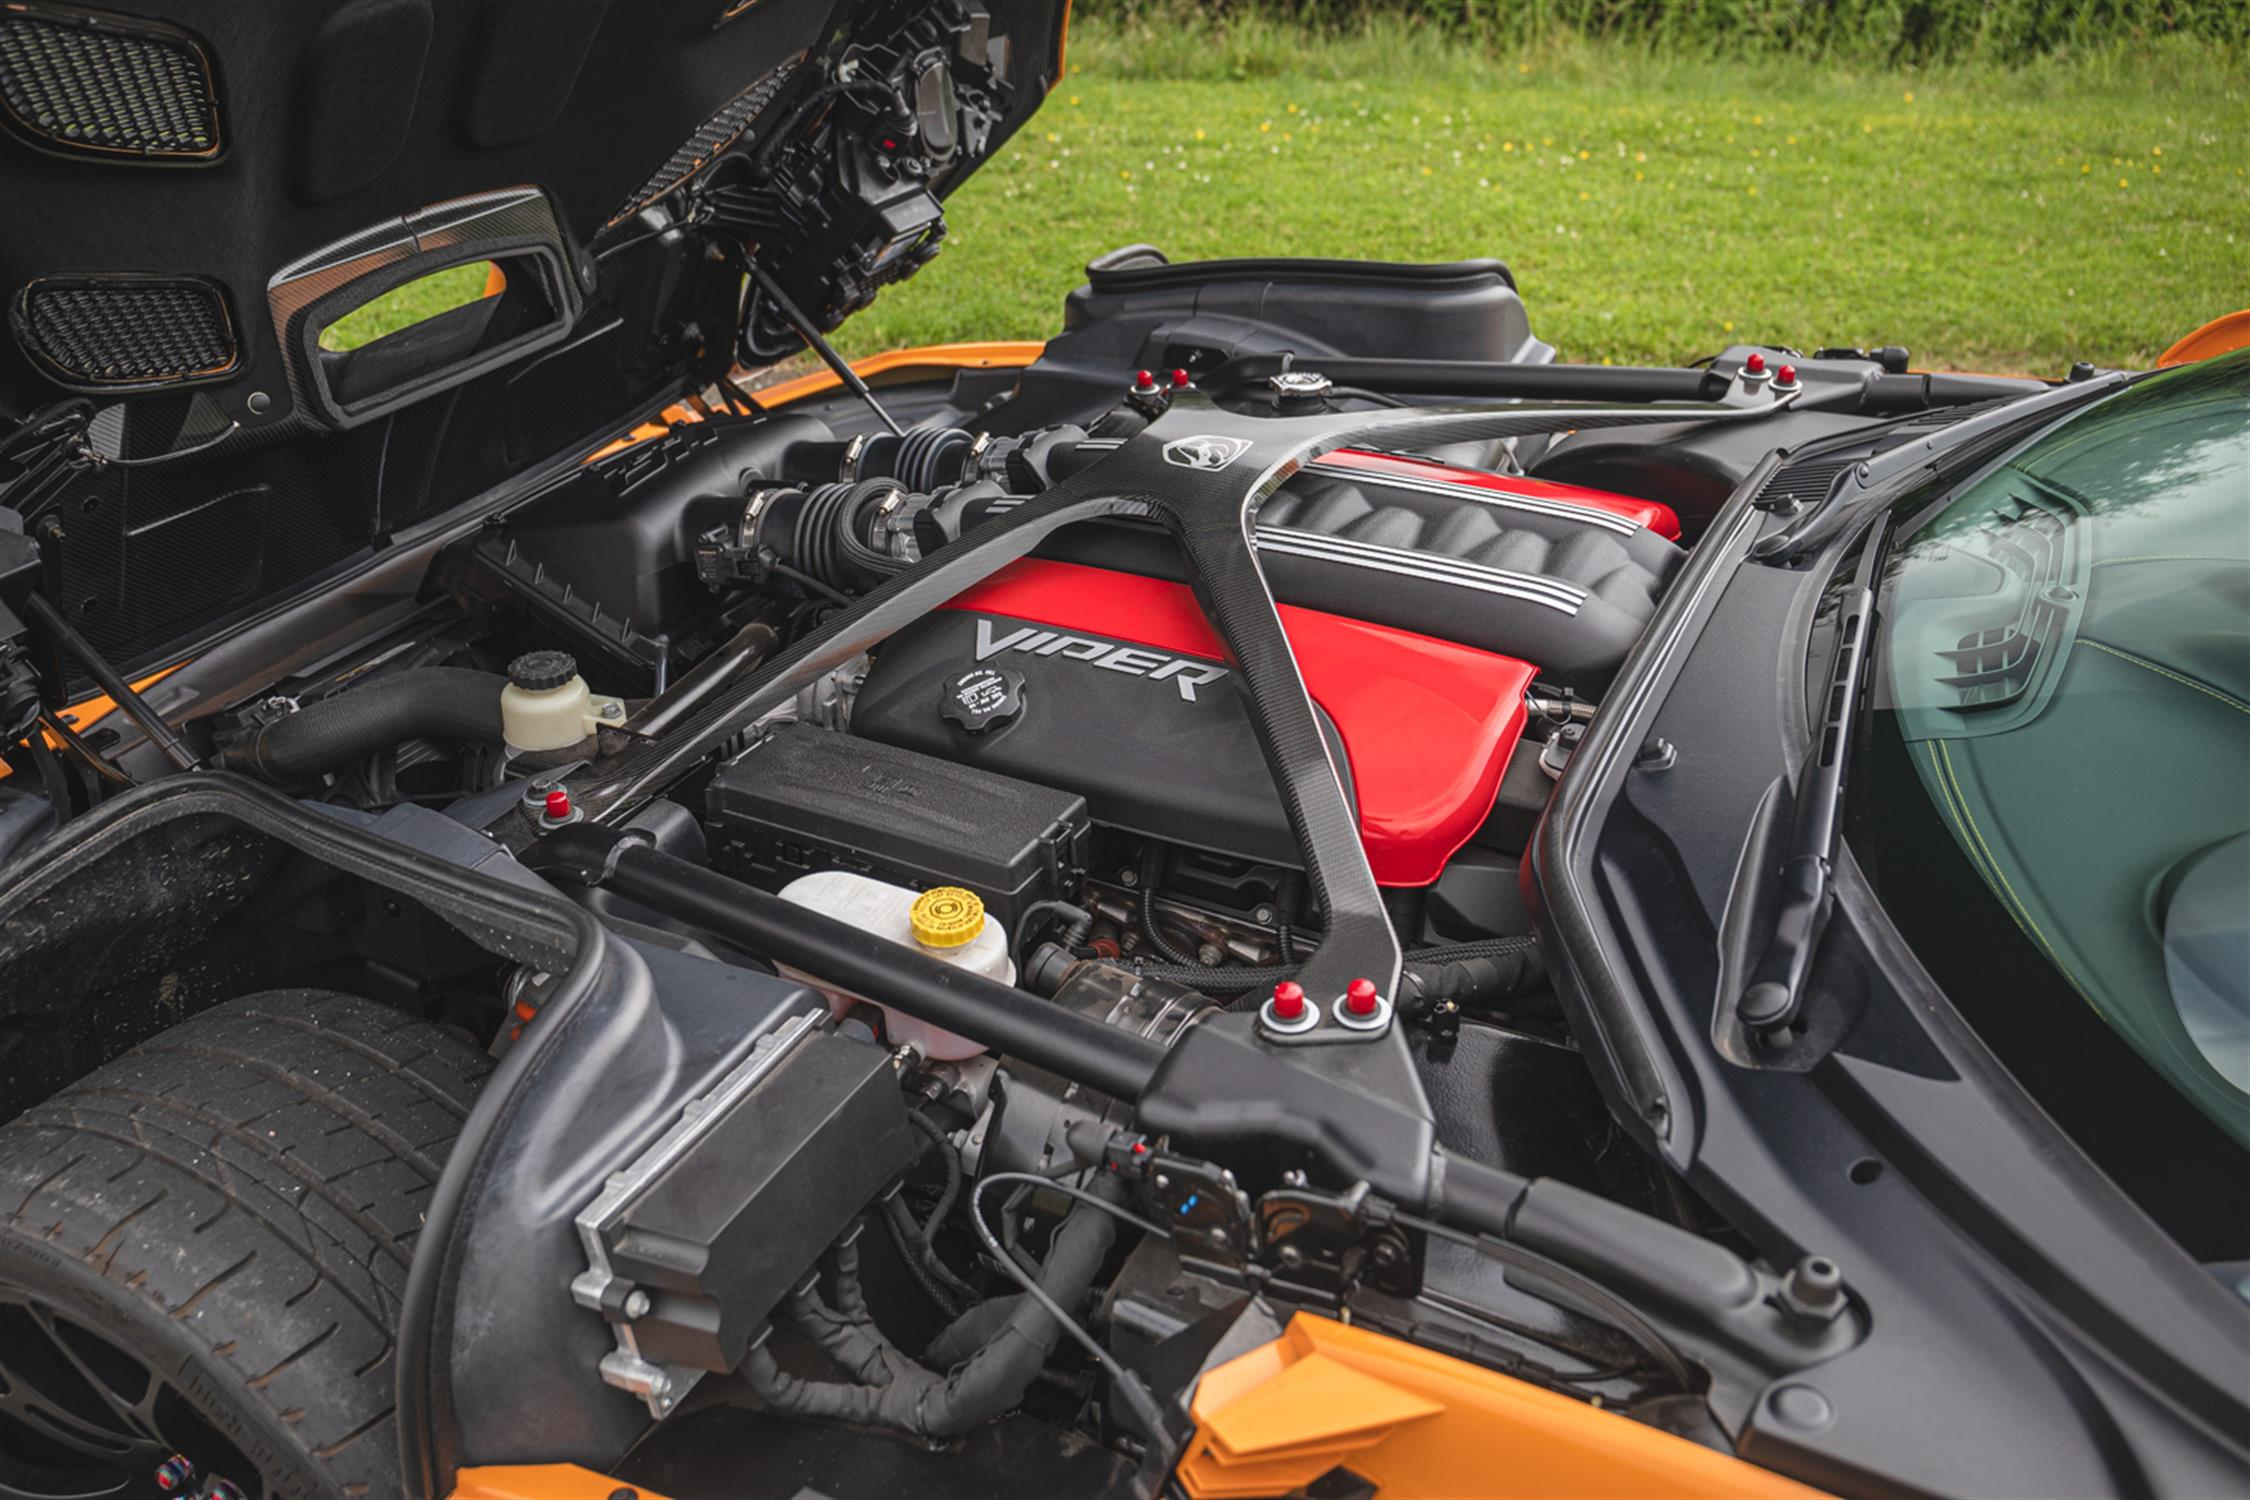 2015 Dodge Viper TA 2.0 6-Speed Coupe - Image 3 of 10